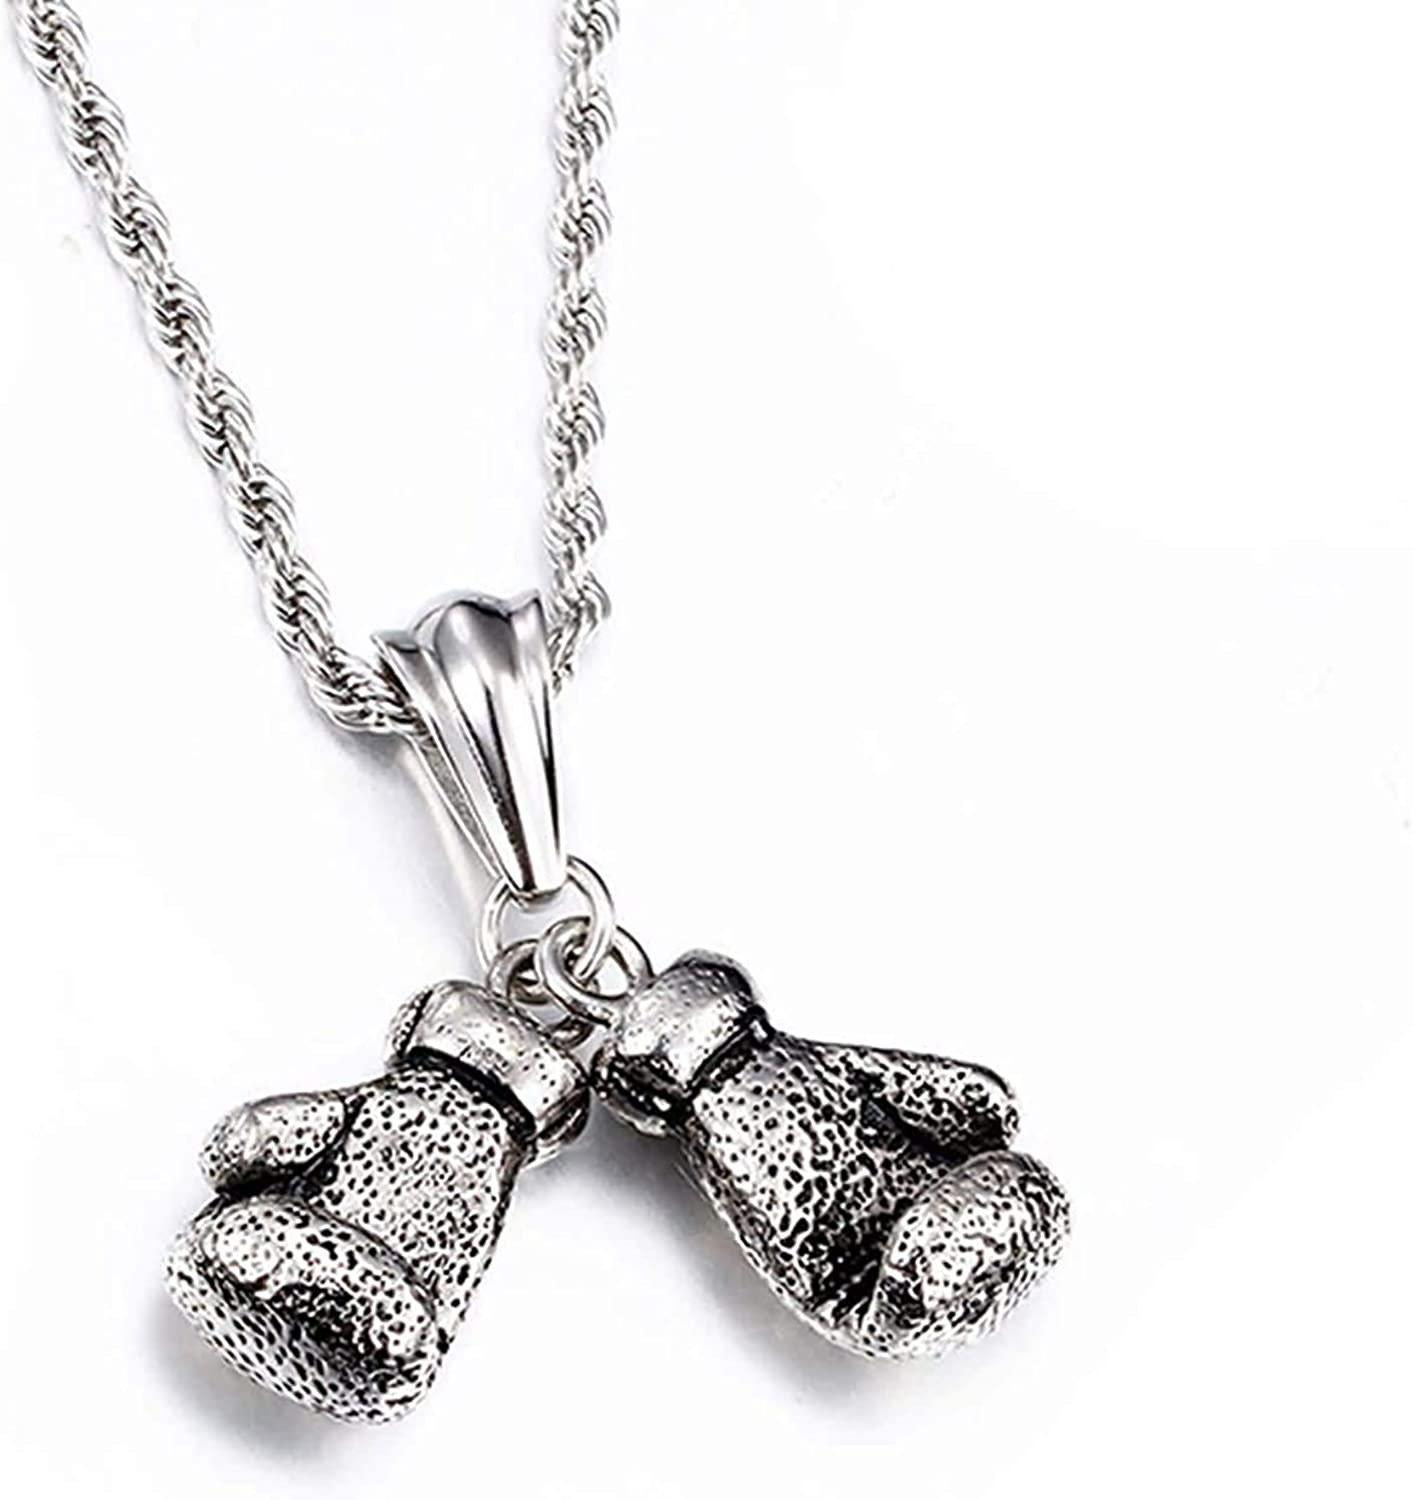 LOPEZ KENT Mens Stainless Steel Necklace Pendant Gothic Necklace Boxing Gloves Silver Necklace